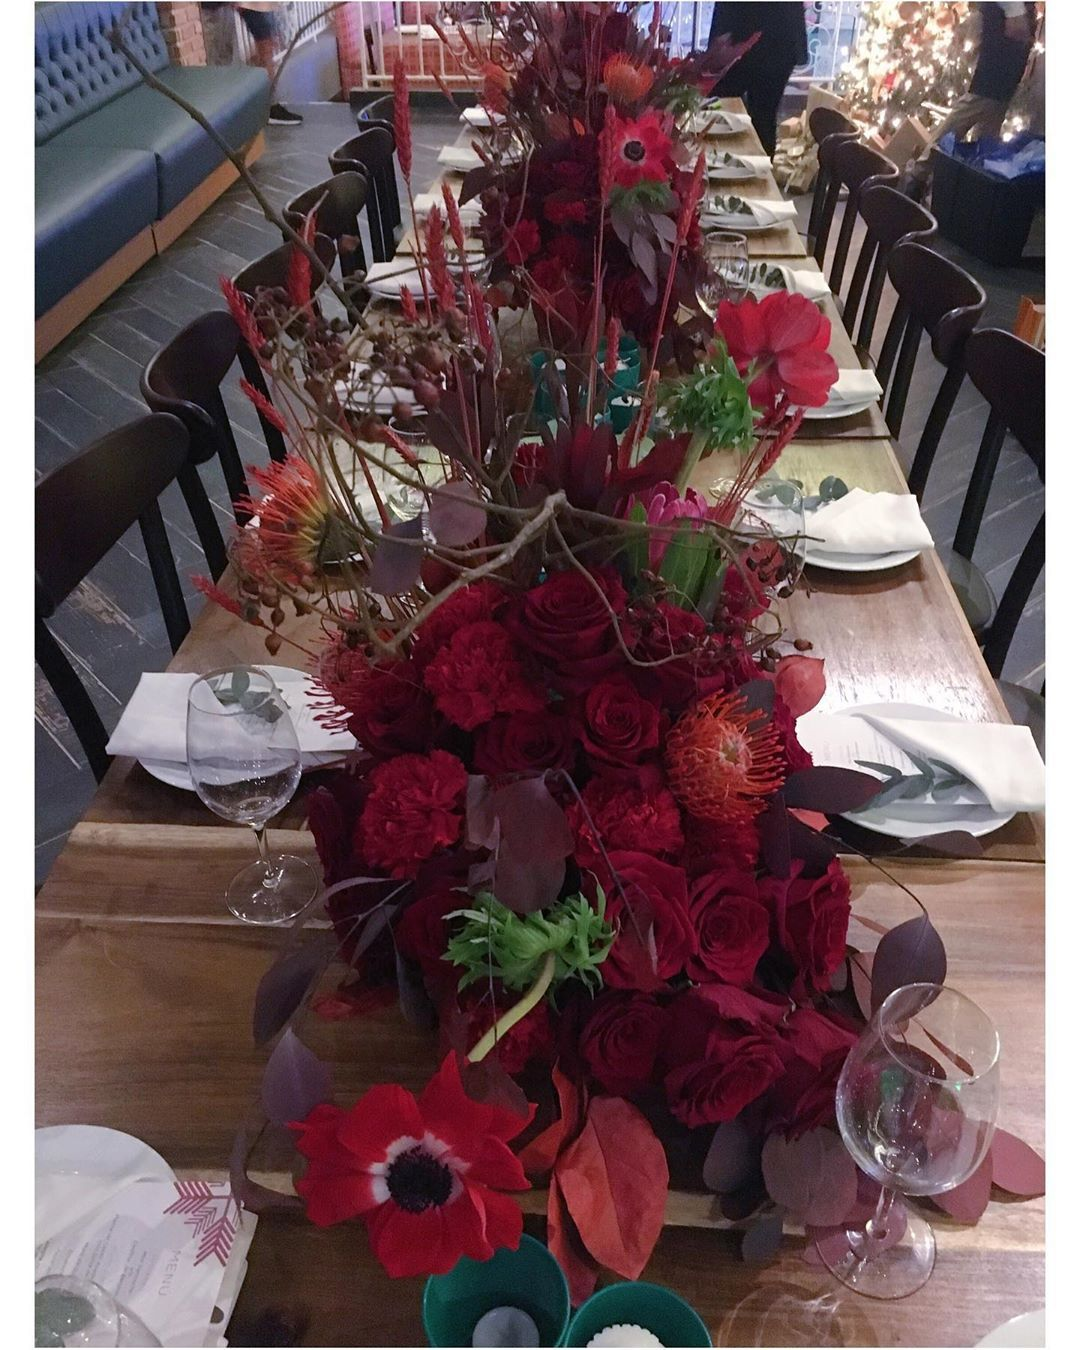 RED CHRISTMAS  #red #redchristmas #flowerdesign #merrychristmas #natale #navidad... #flowercomposition #flowerdesign #merrychristmas? #Natale! #navidad #red #redchristmas